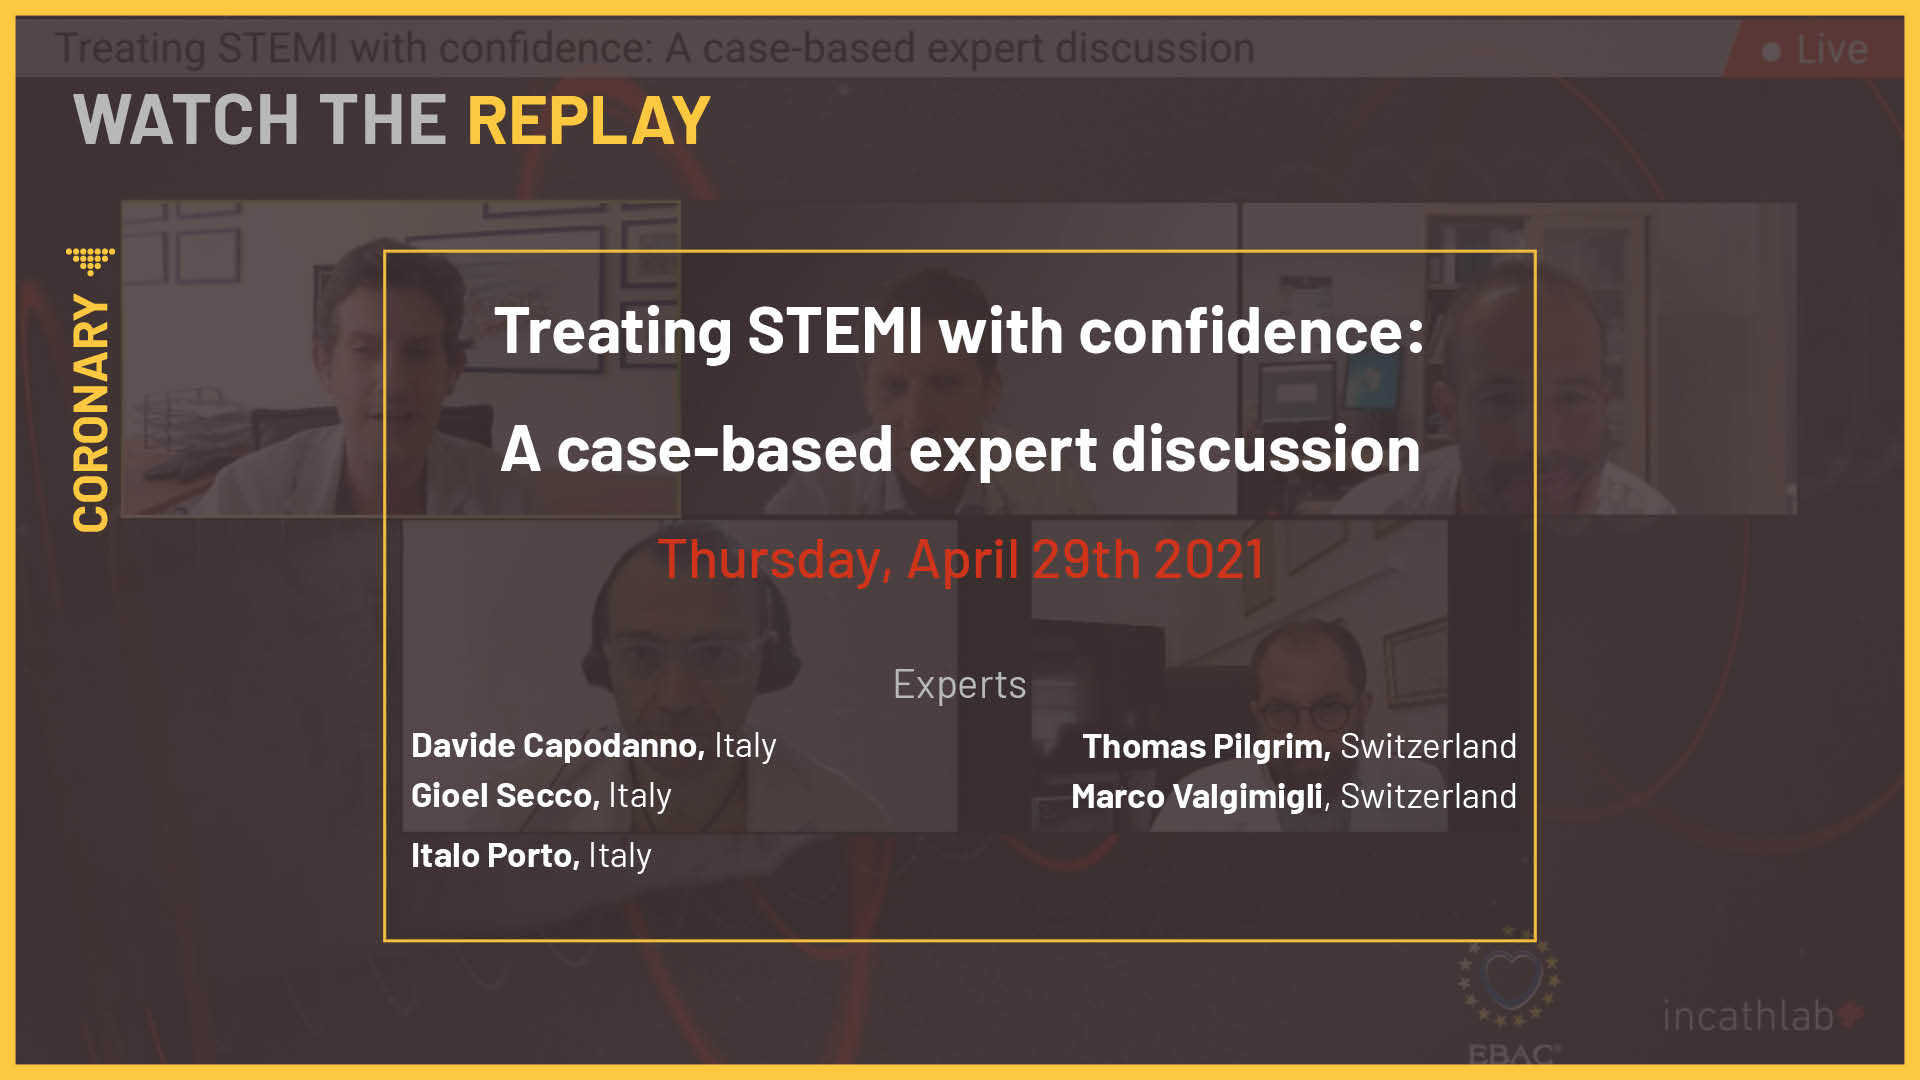 Treating STEMI with confidence: A case-based expert discussion